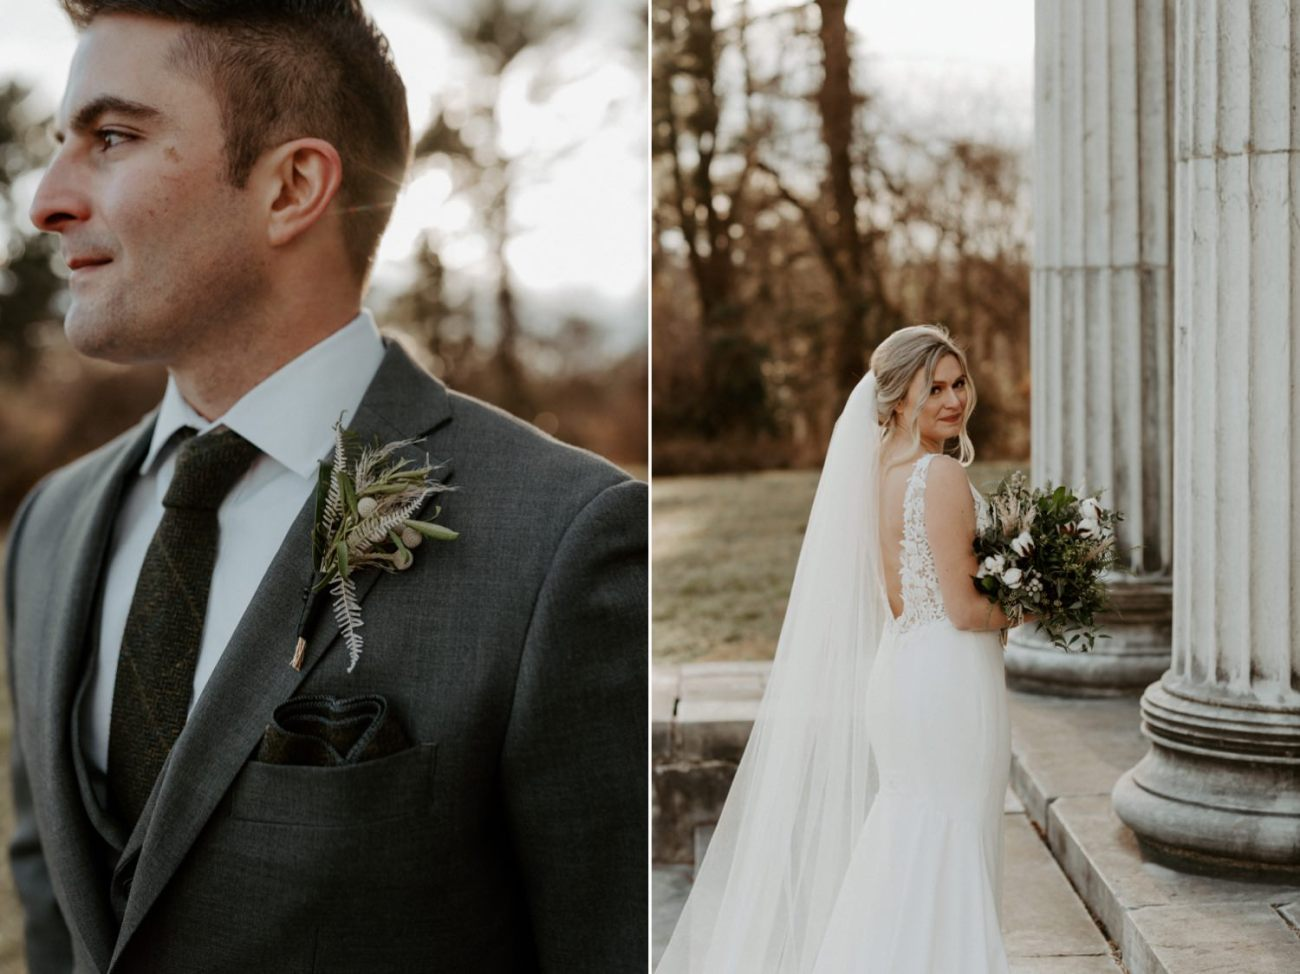 Princeton Battlefield Wedding Princeton University Elopement New Jersey Wedding Photographer Anais Possamai Photography 32